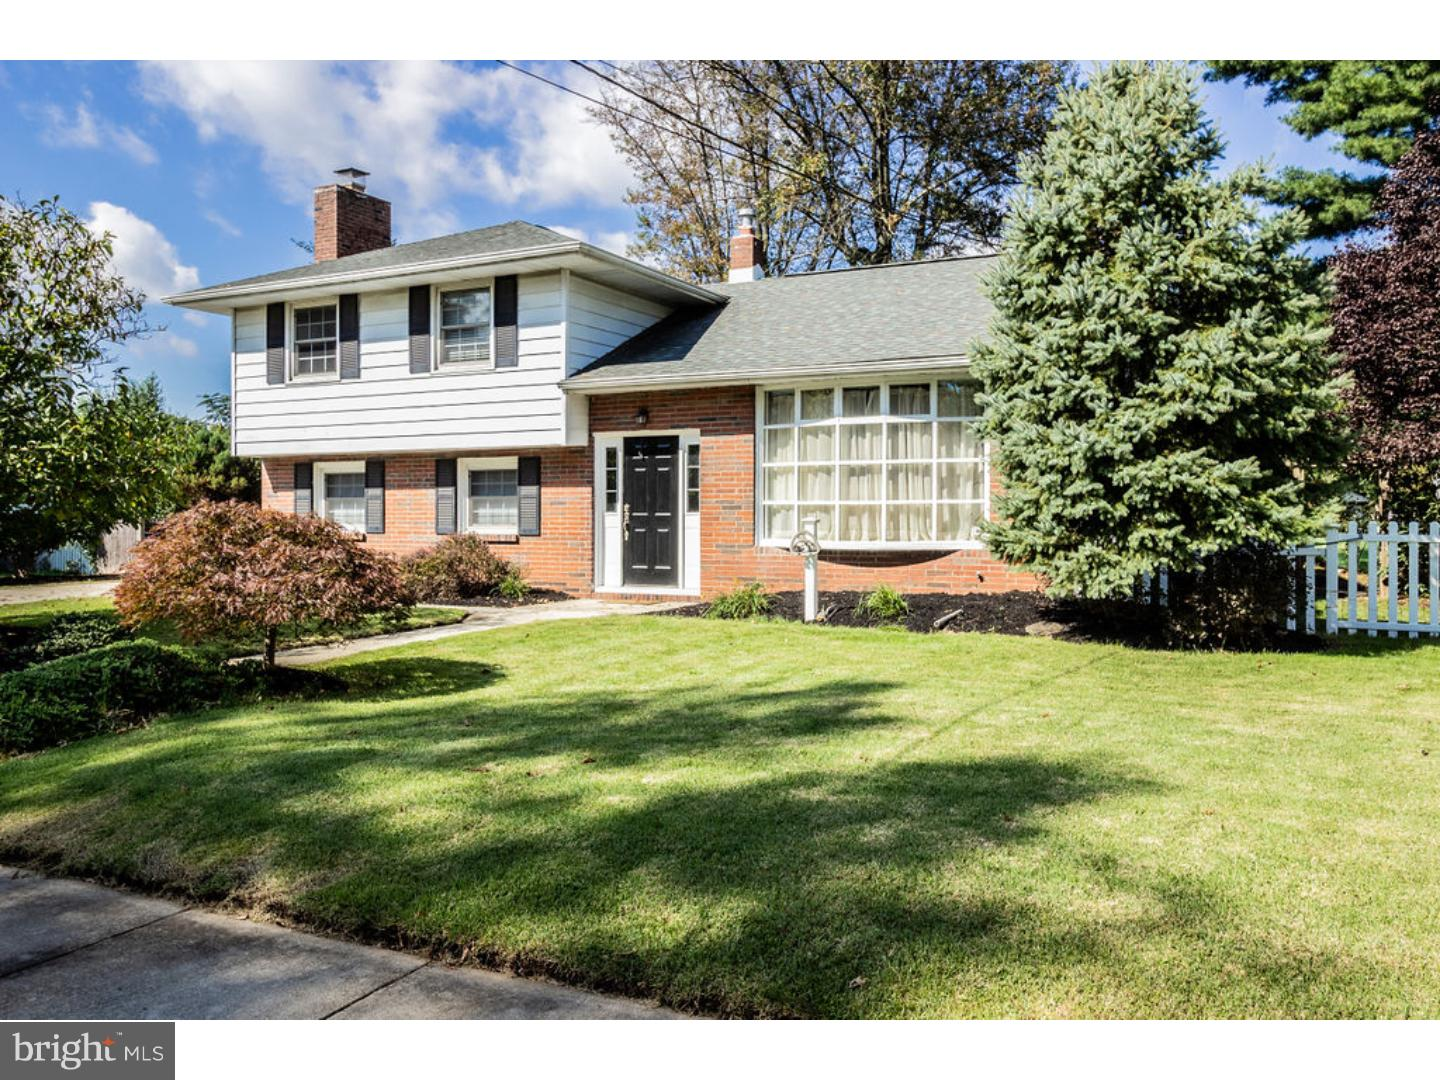 195 PASSAIC AVENUE, THOROFARE, NJ 08086